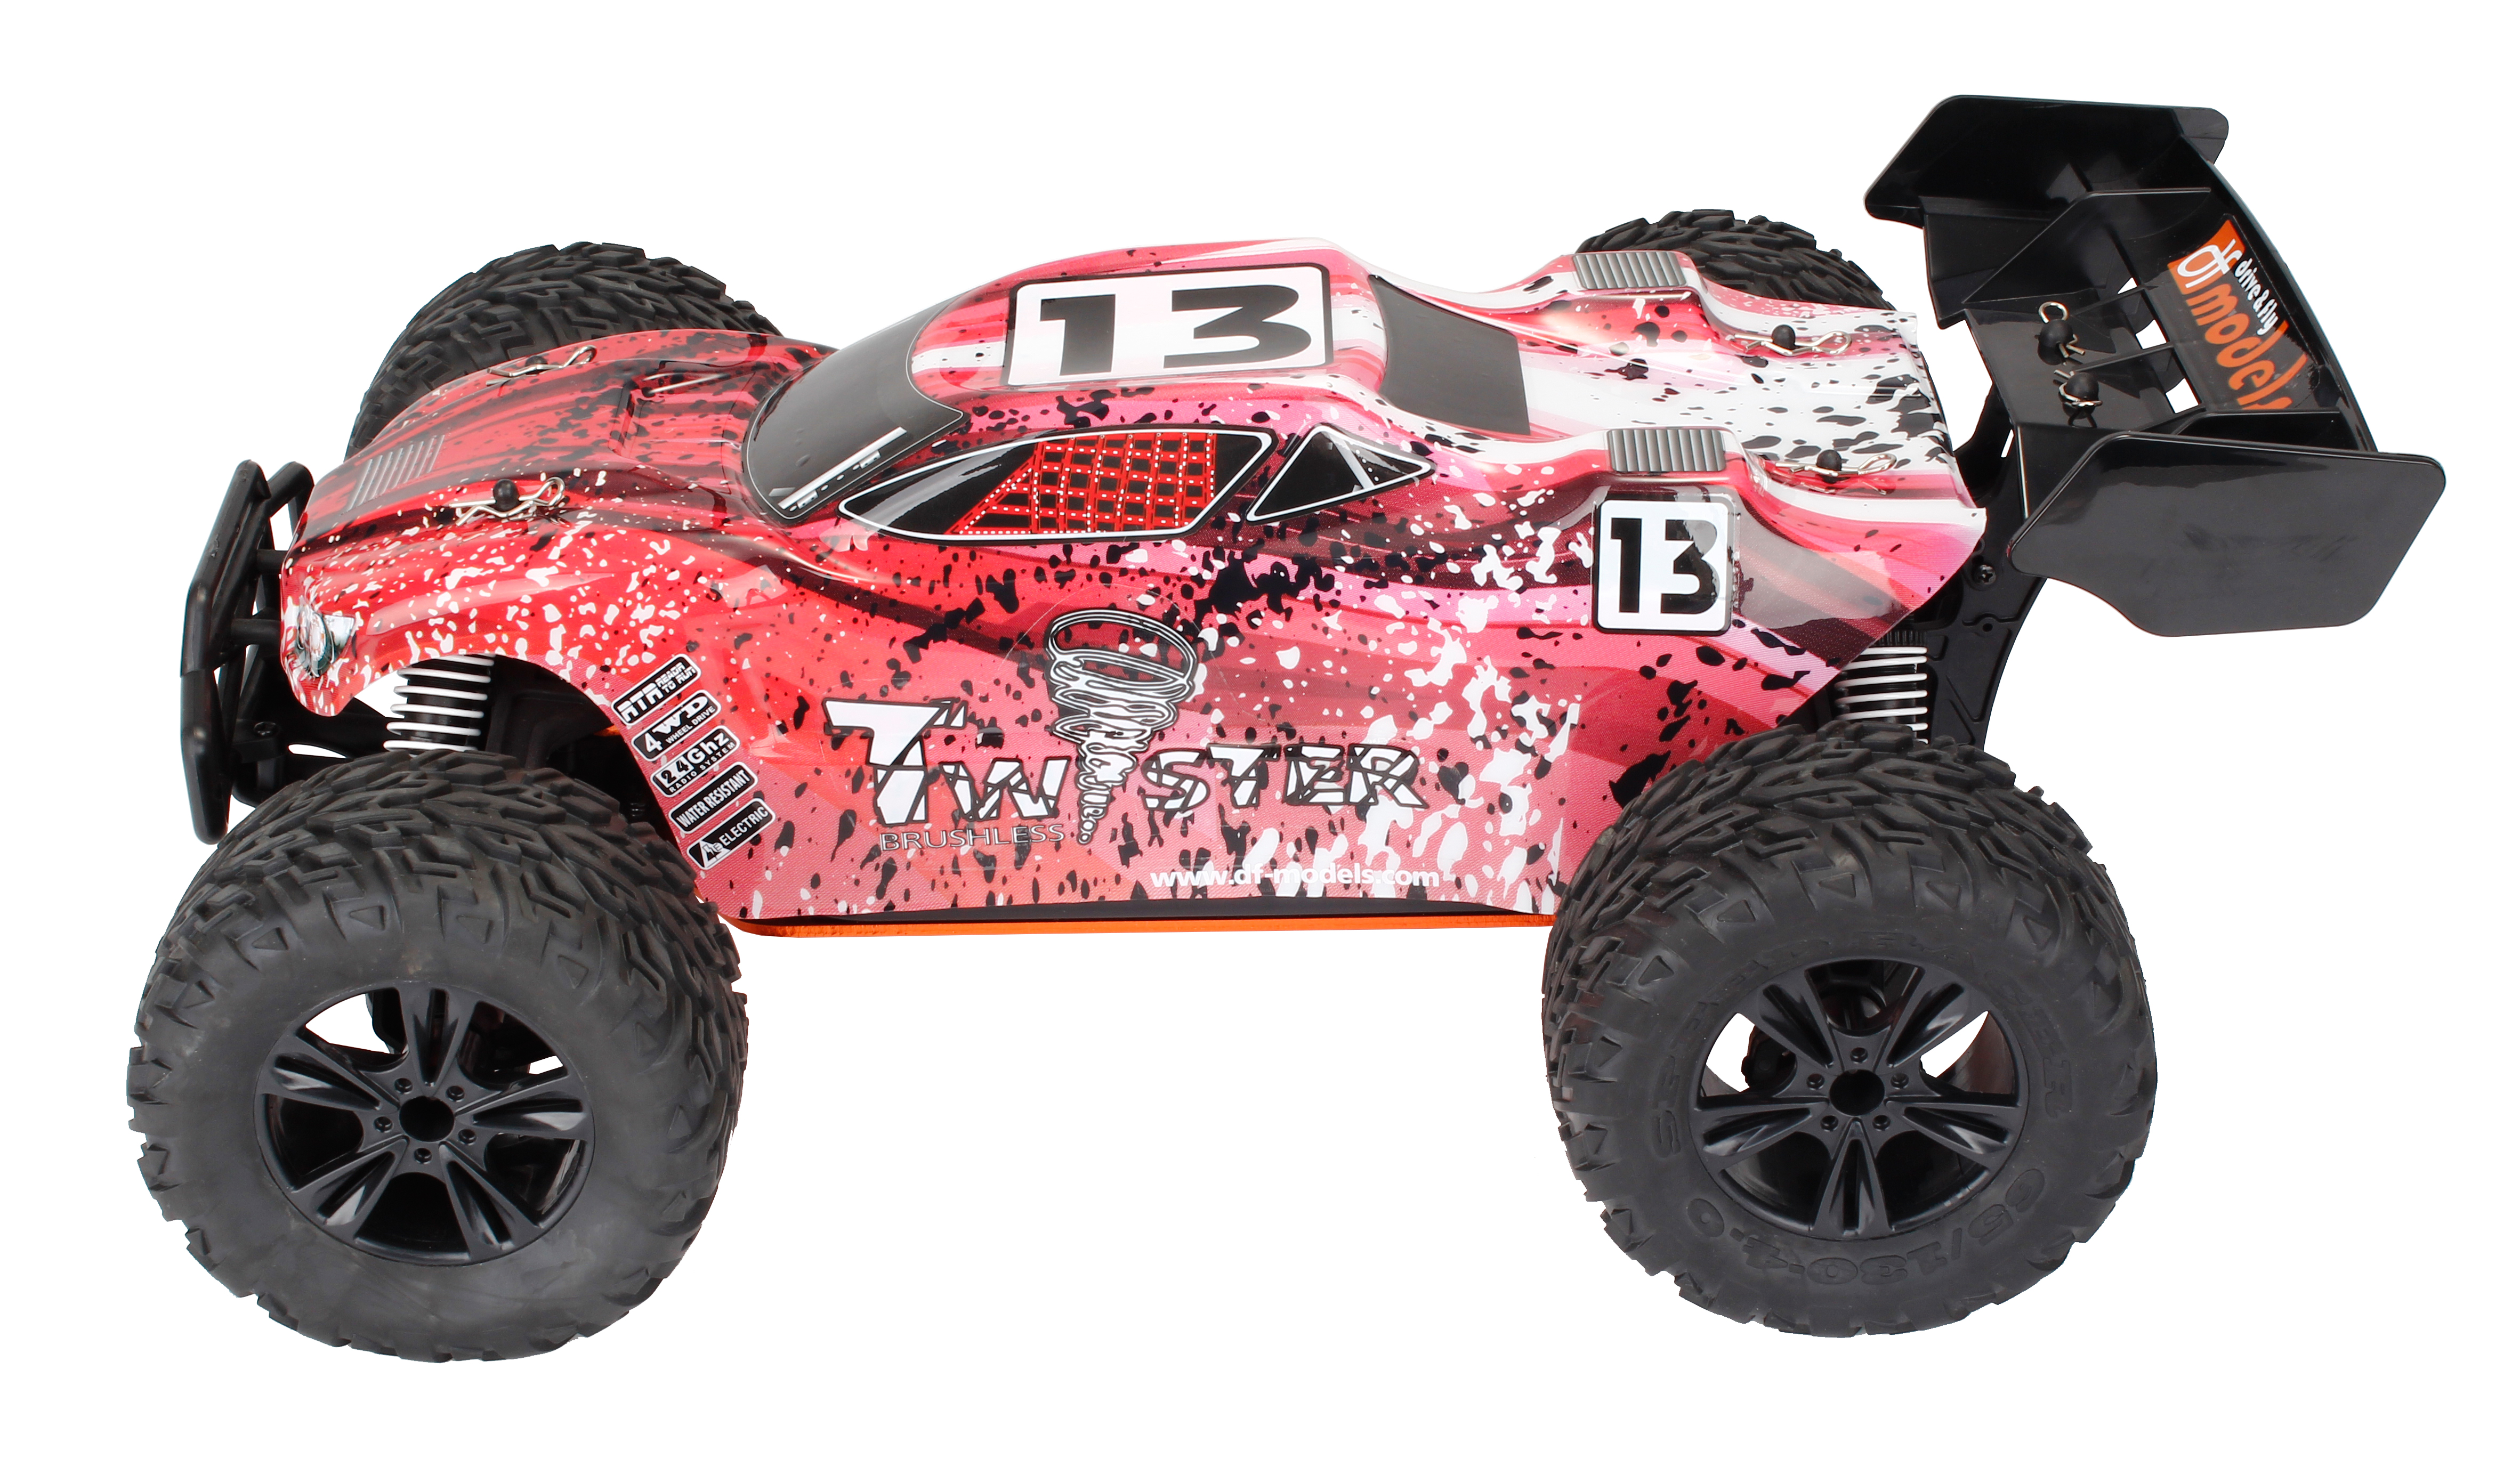 TWISTER Truggy 1:10XL RTR Brushless